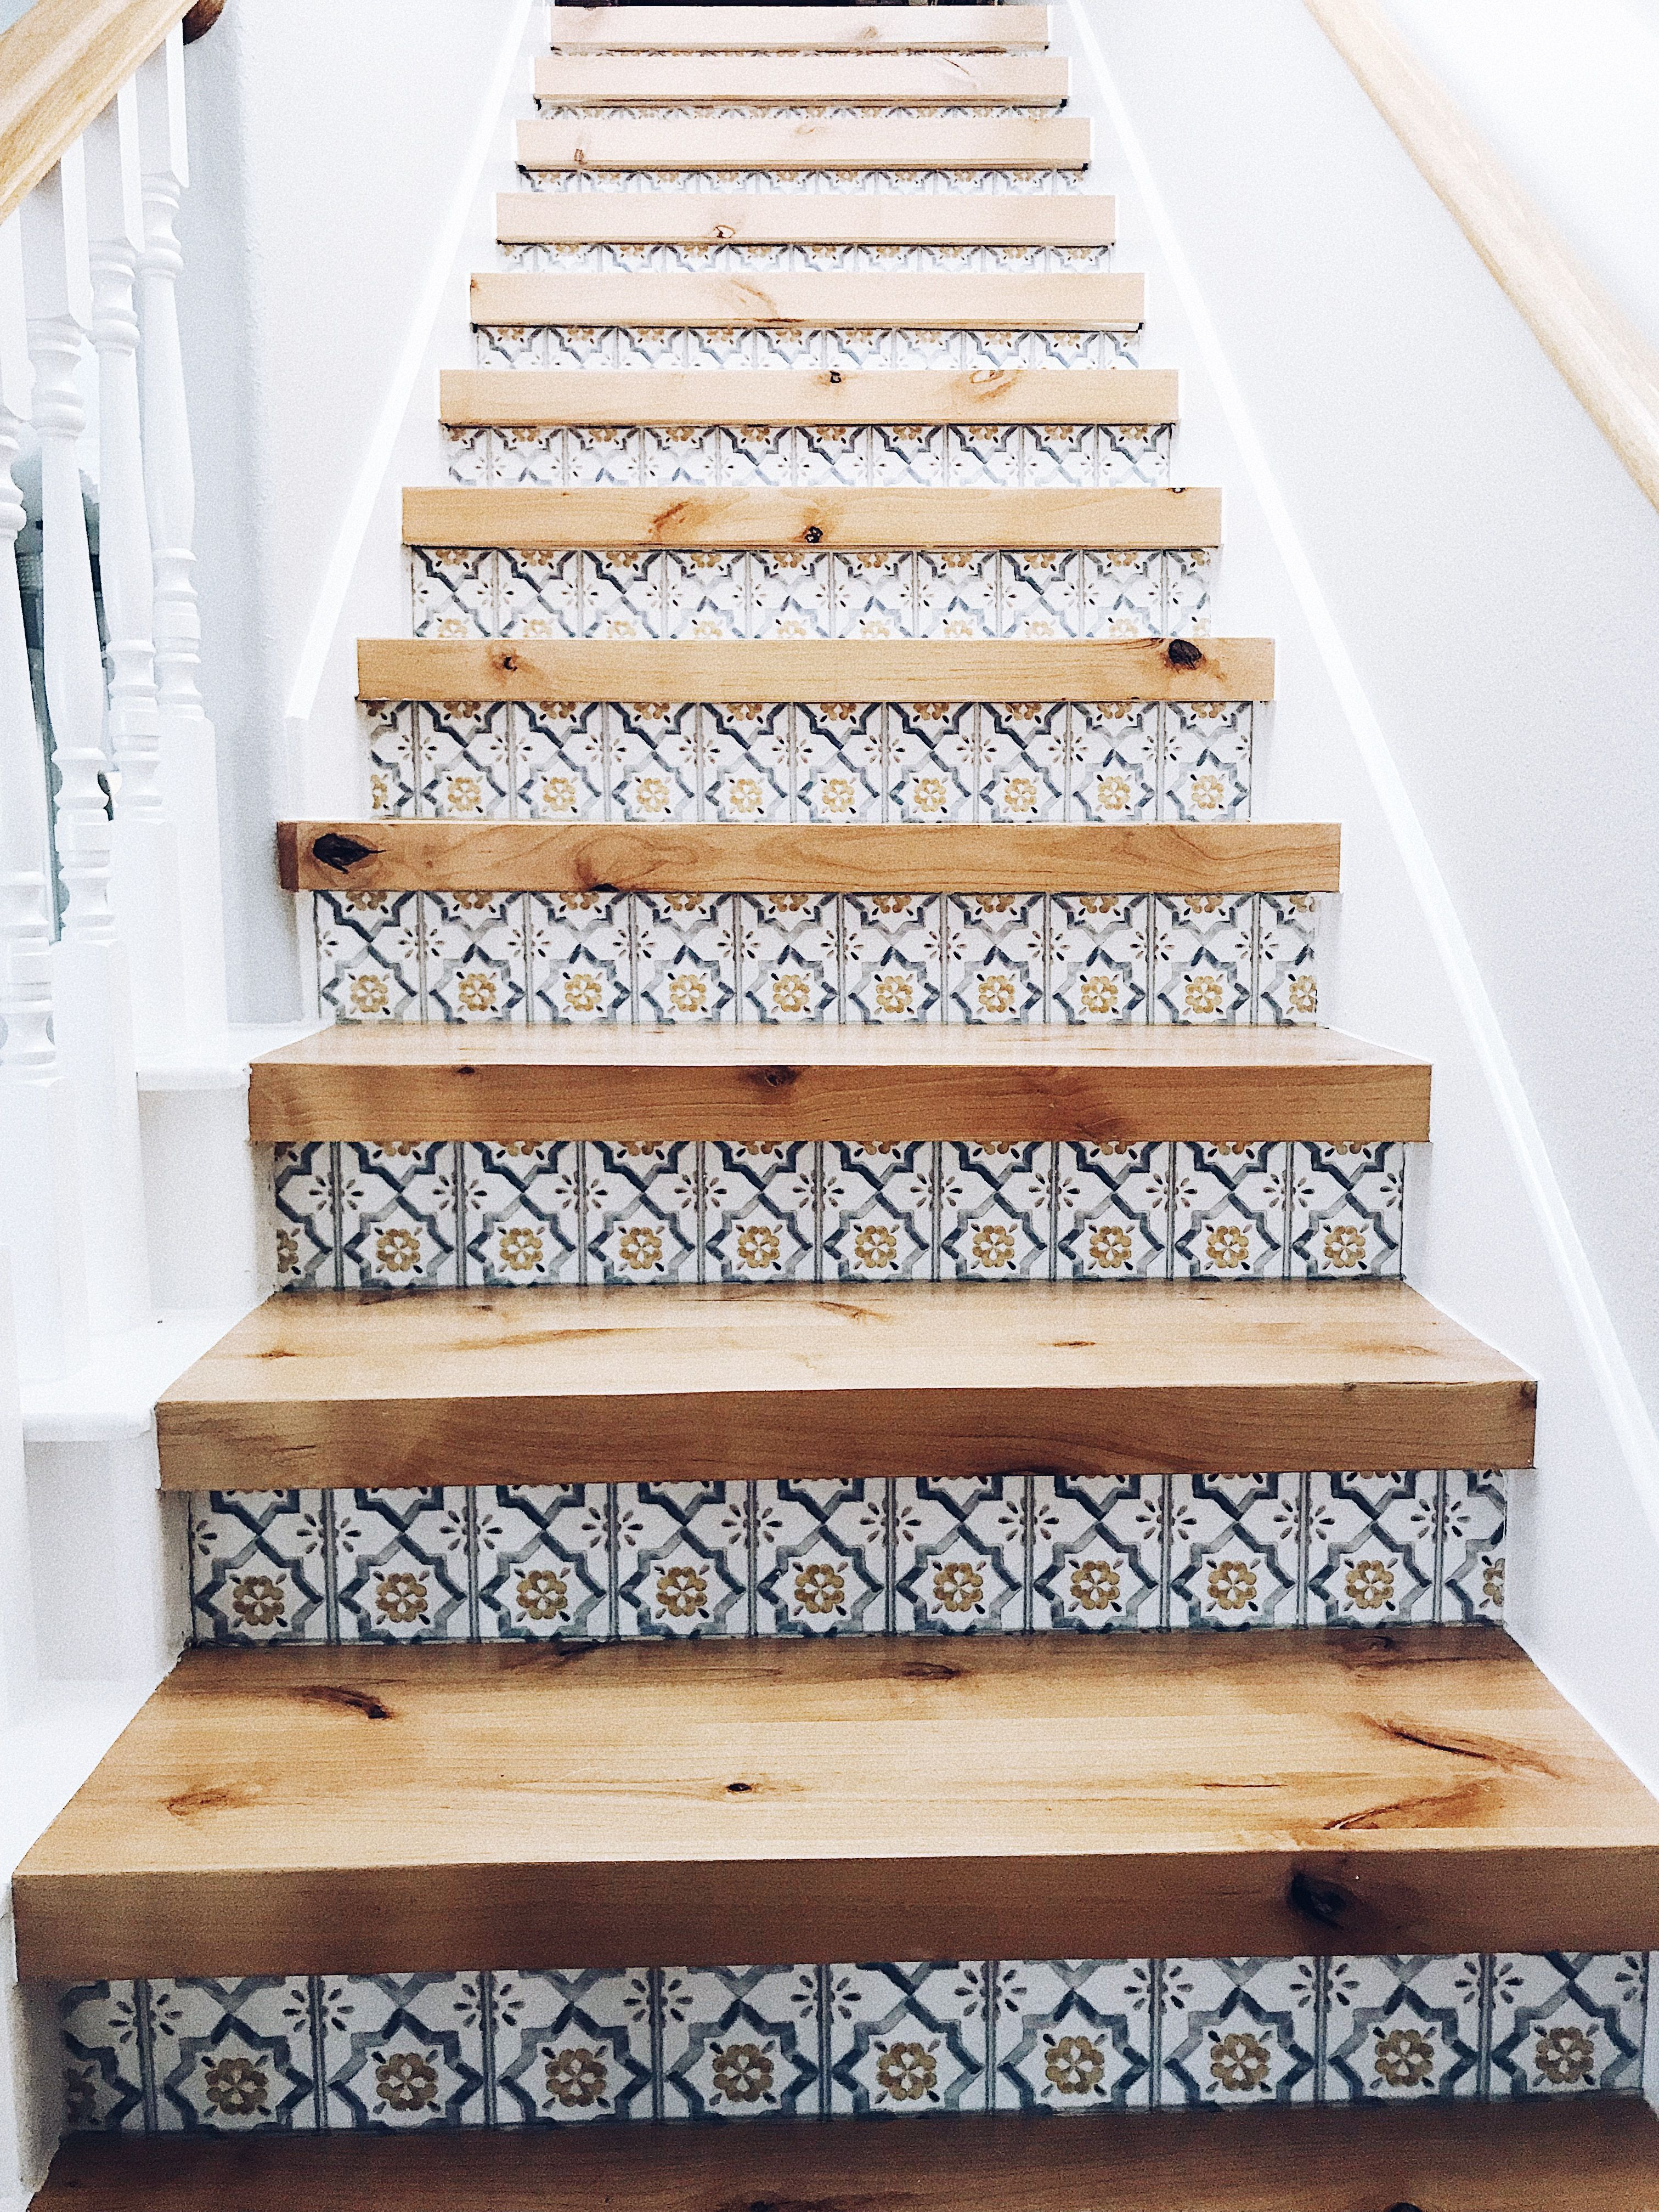 Wood And Tiled Risers Stairs Stairs Woodstairs Woodenstairs | Tile Risers On Wood Stairs | Stair Tread | Decorative | Wood Finish | Stair Outdoors | Wooden